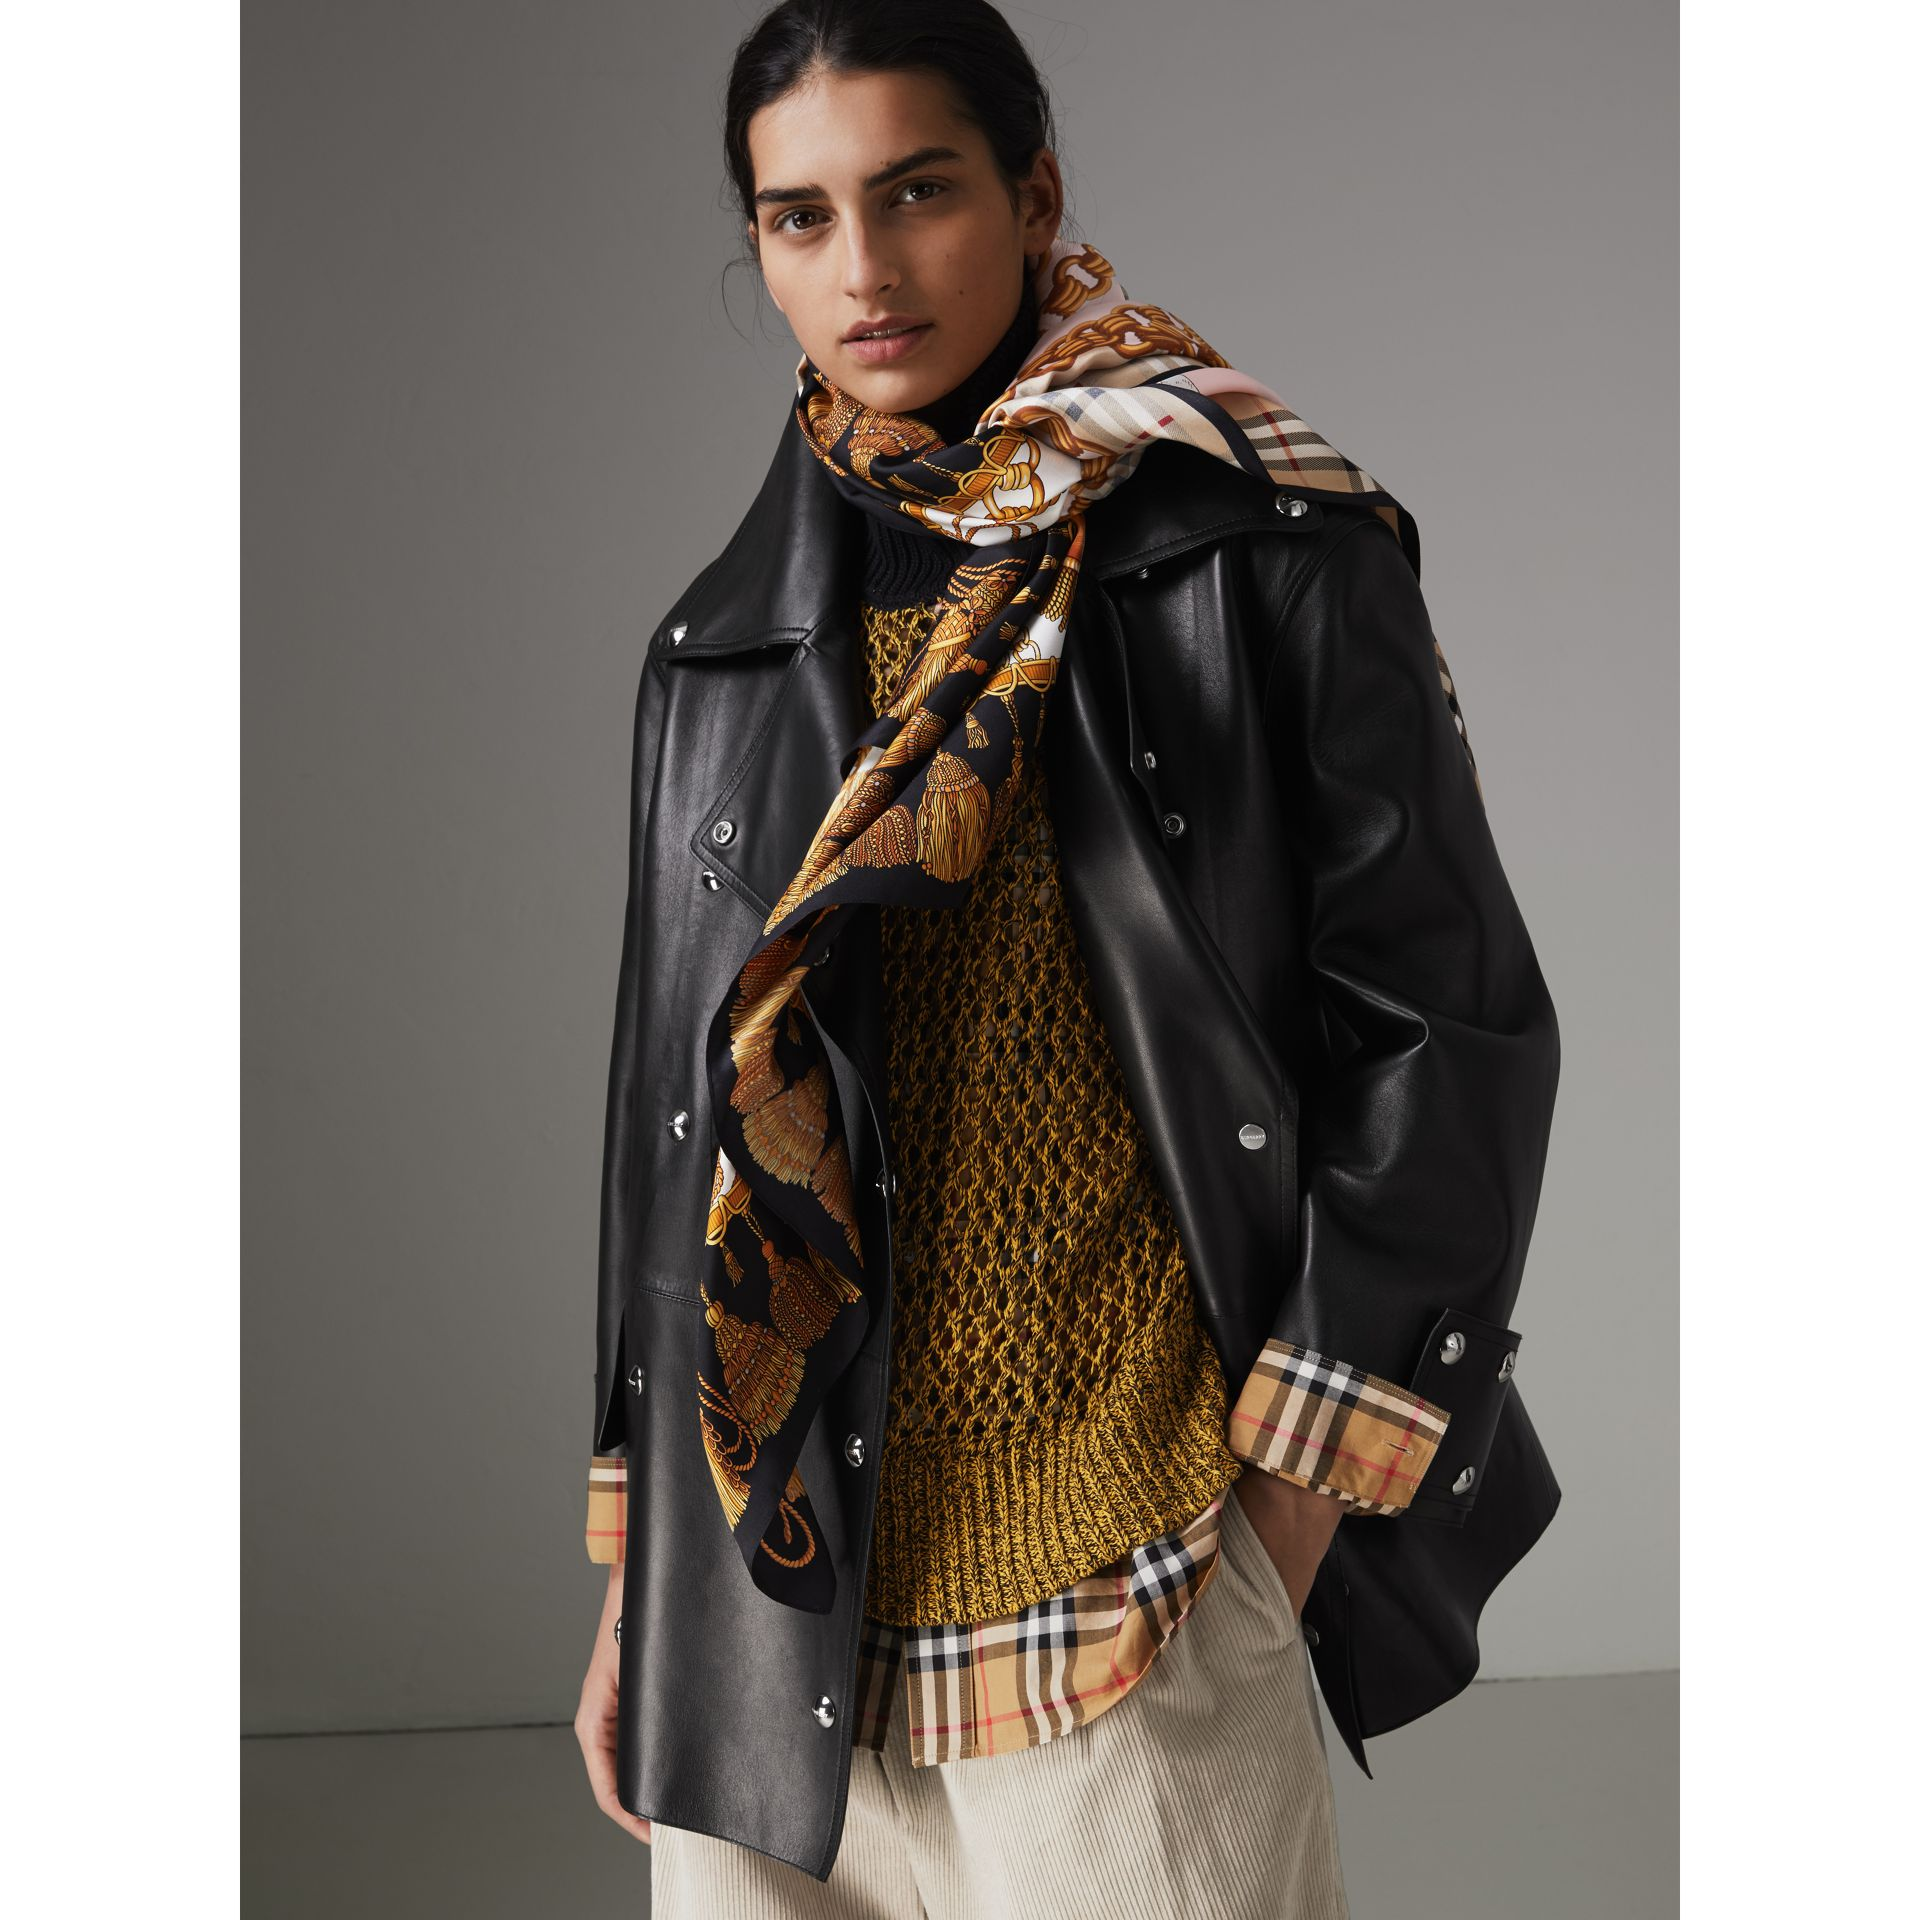 Archive Scarf Print Silk Scarf in Gold | Burberry United Kingdom - gallery image 4